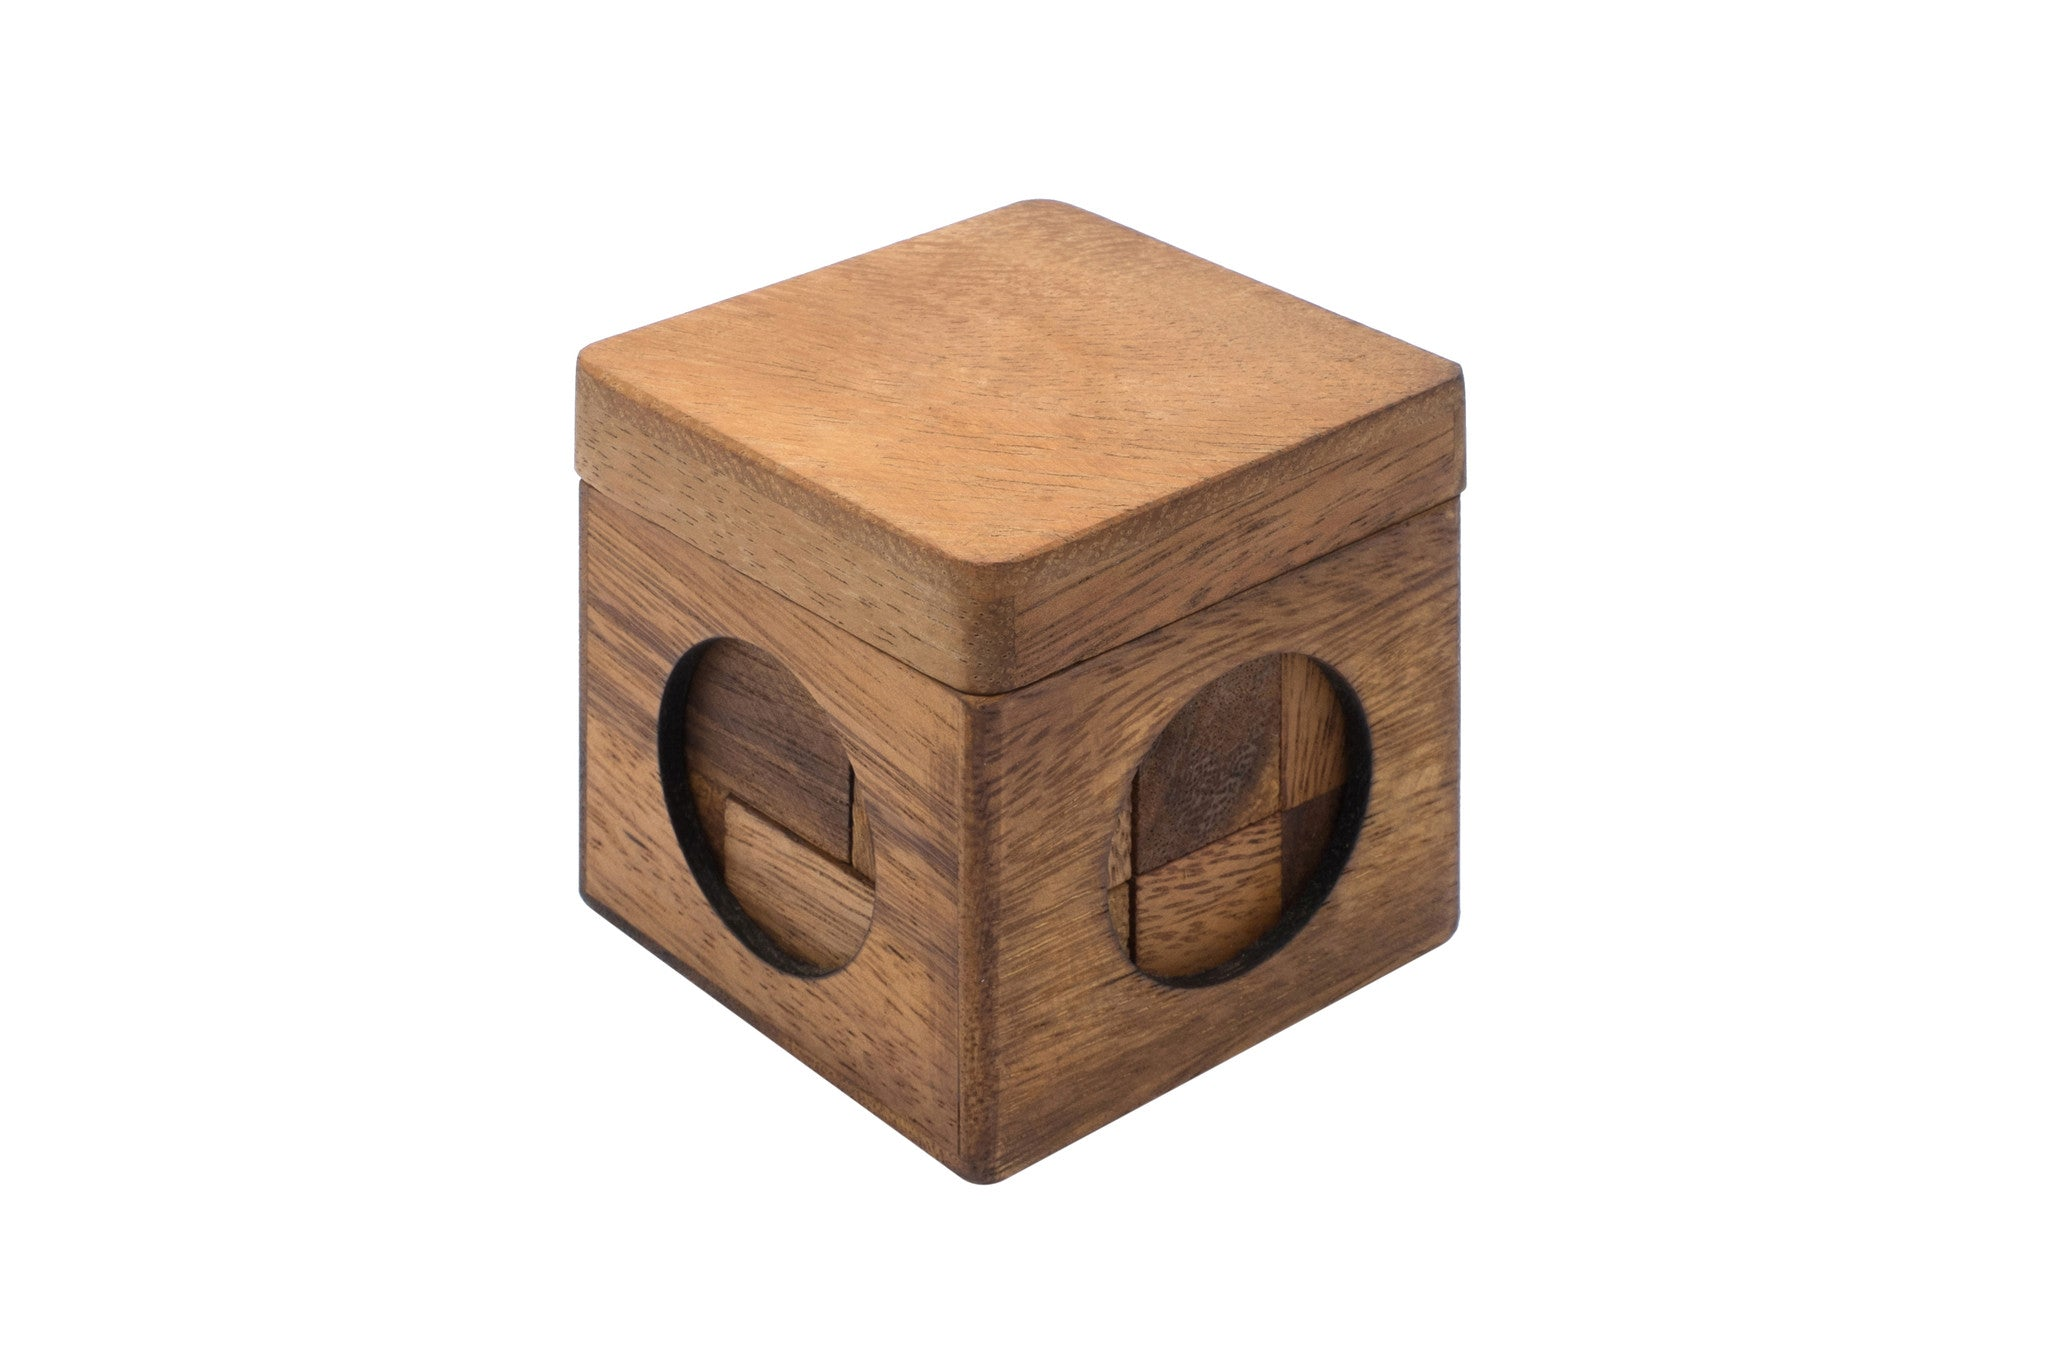 Cube Puzzle - Soma Cube Interlocking Logic Puzzle with ...